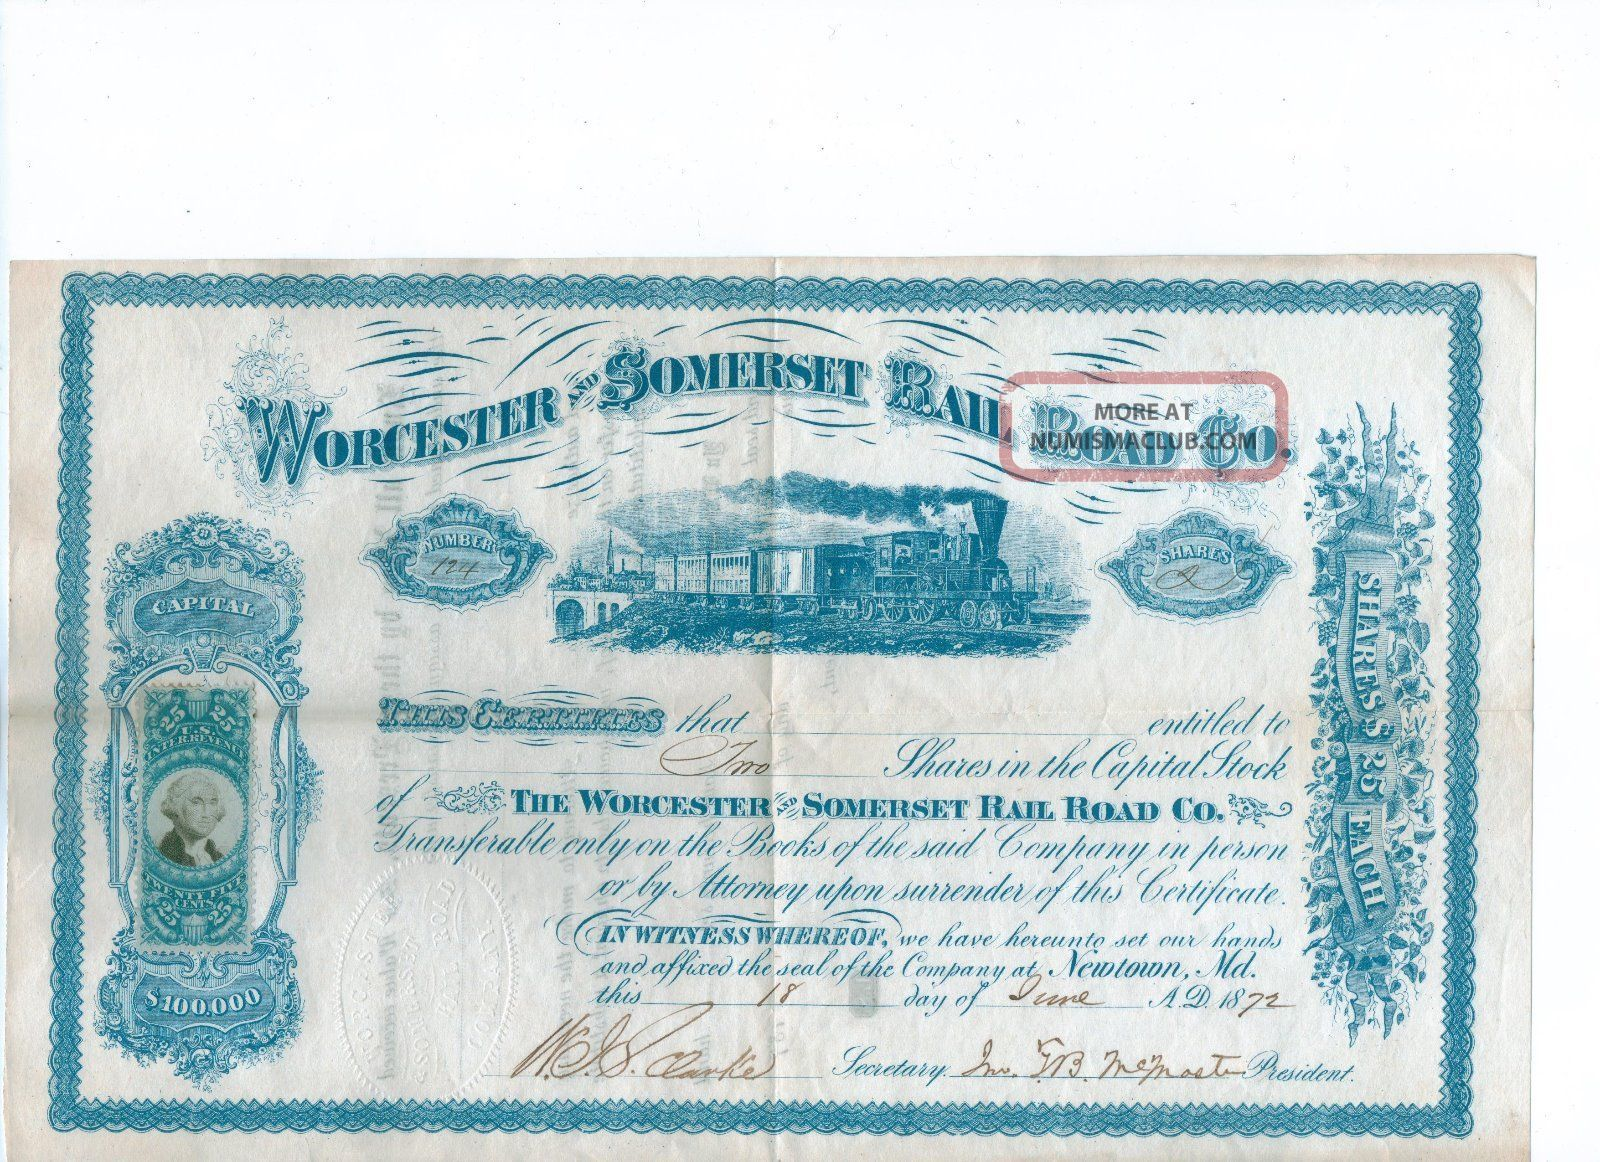 Worcester And Somerset Rail Road Company 1872 Uncanceled Very Fine World photo